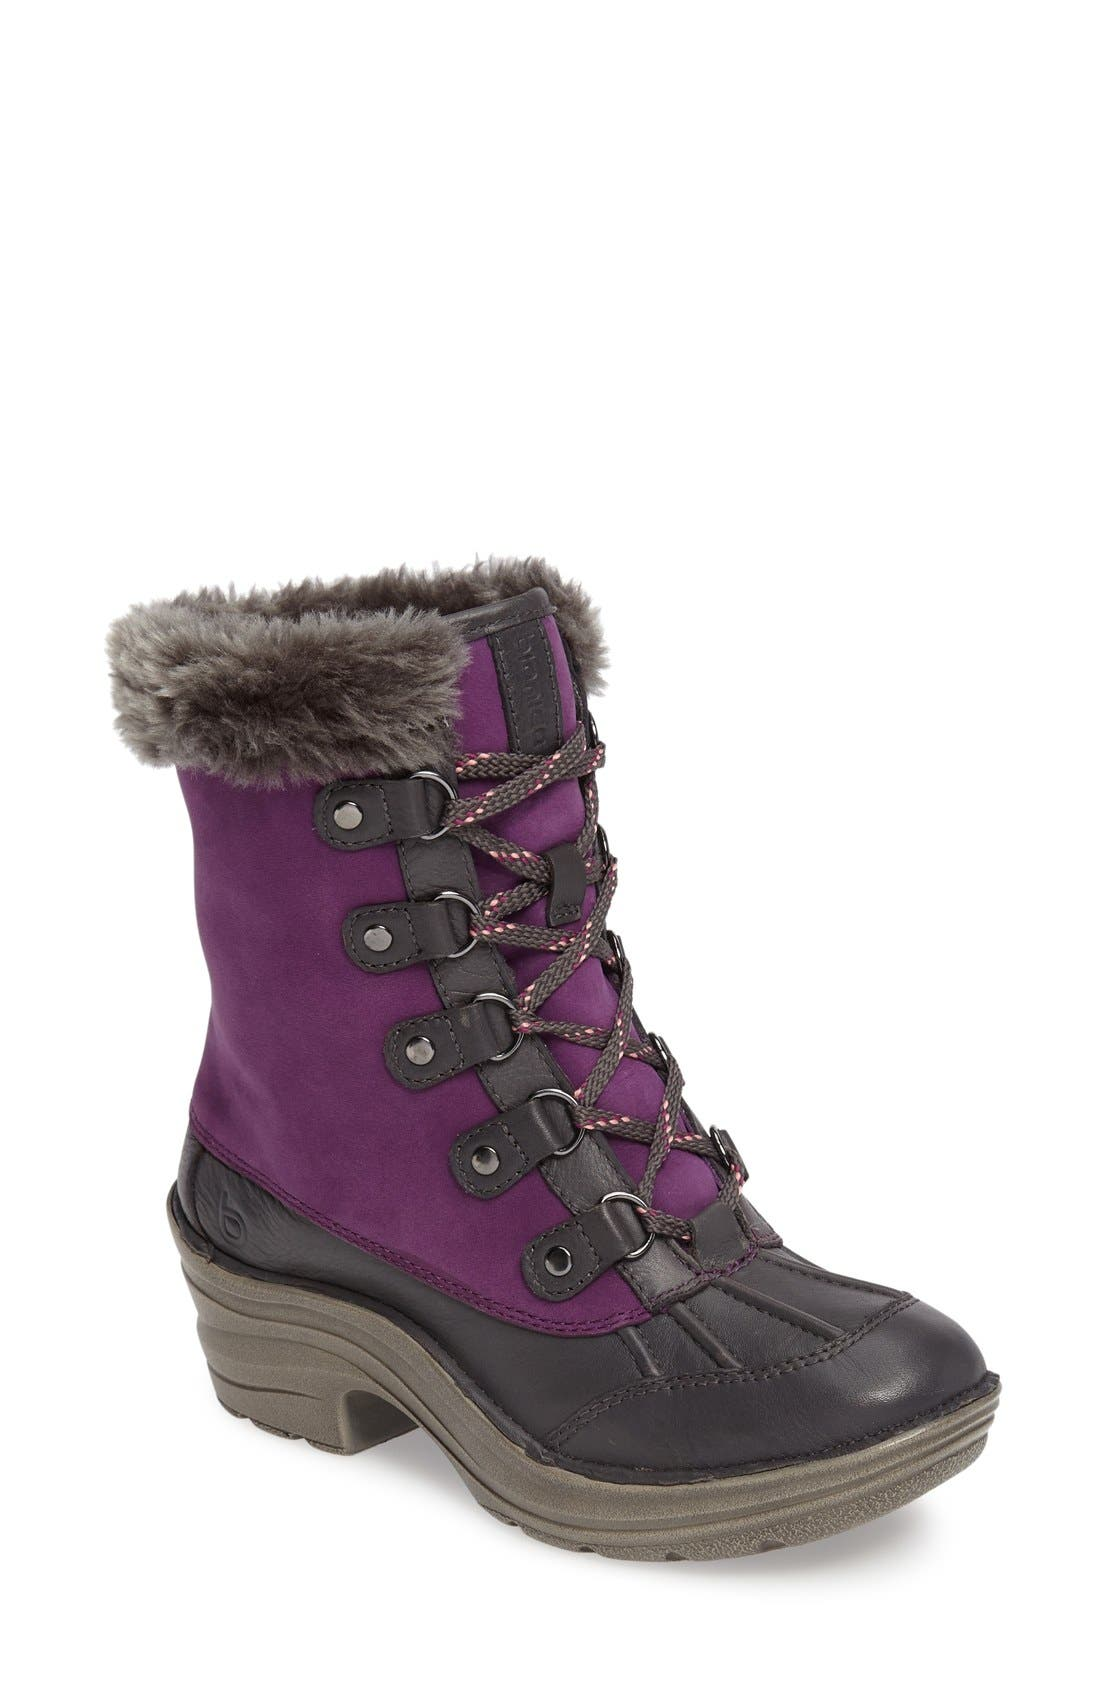 Main Image - bionica Rosemound Waterproof Boot (Women)